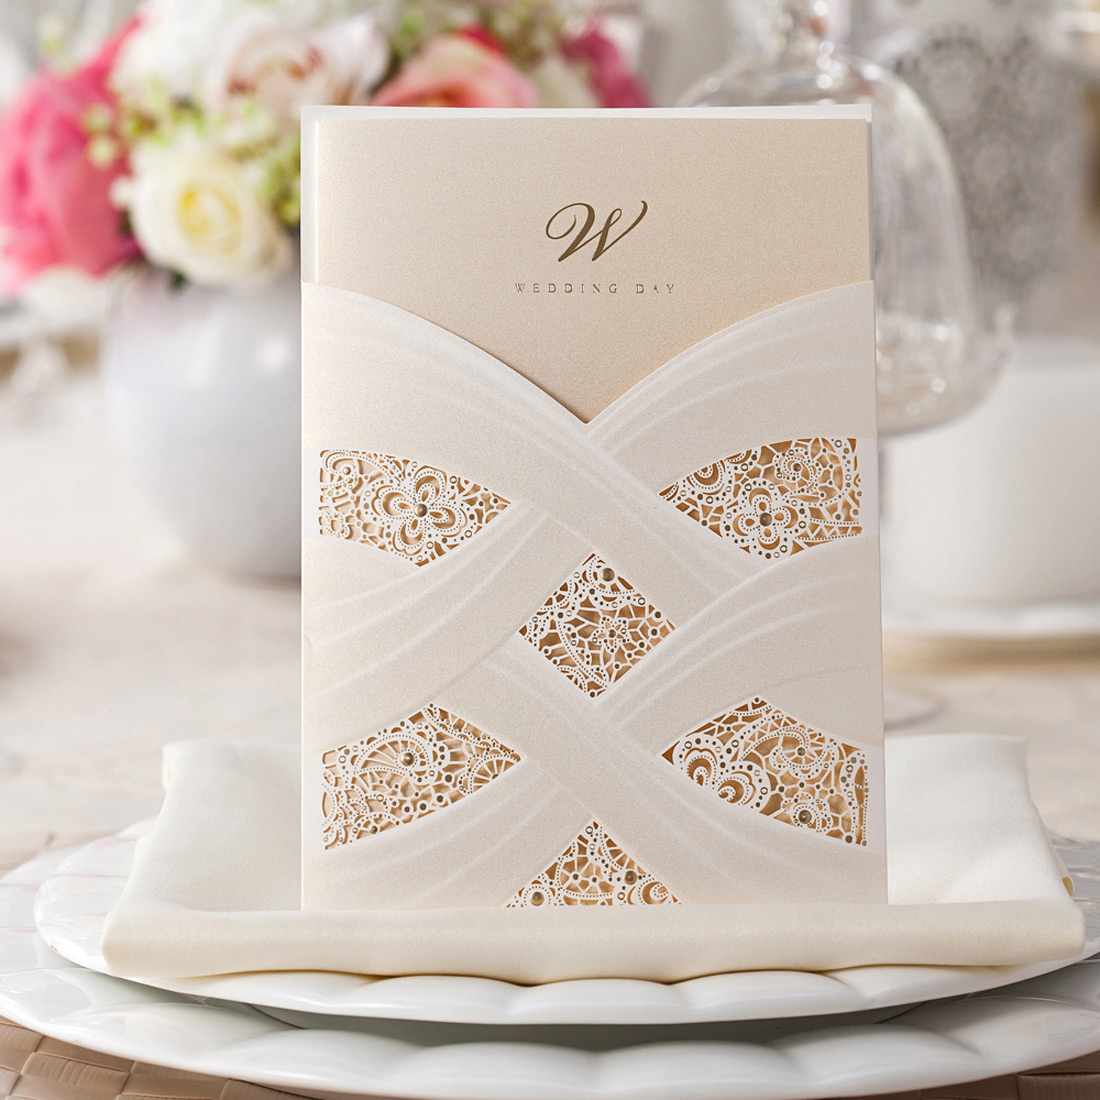 Details About Elegant Vertical Laser Cut Wedding Invitation Card Kit Personalized For Marriage